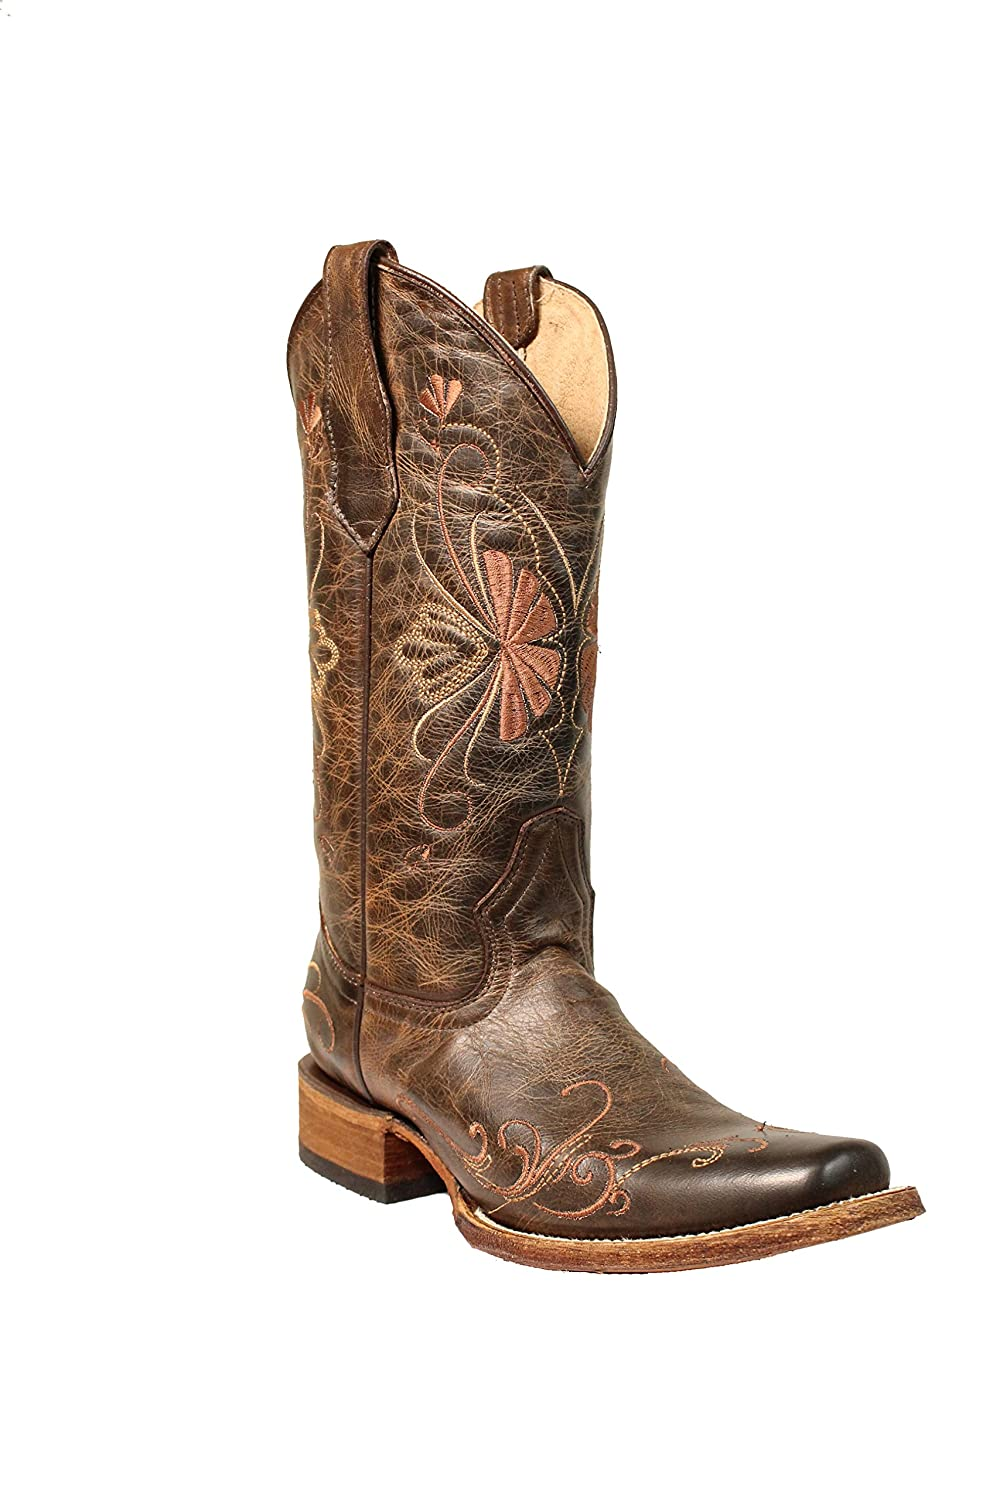 c9be92804e4 Corral Circle G Women's Shedron Embroidery Square Toe Pull-On Distressed  Leather Western Boots - Sizes 5-12 B